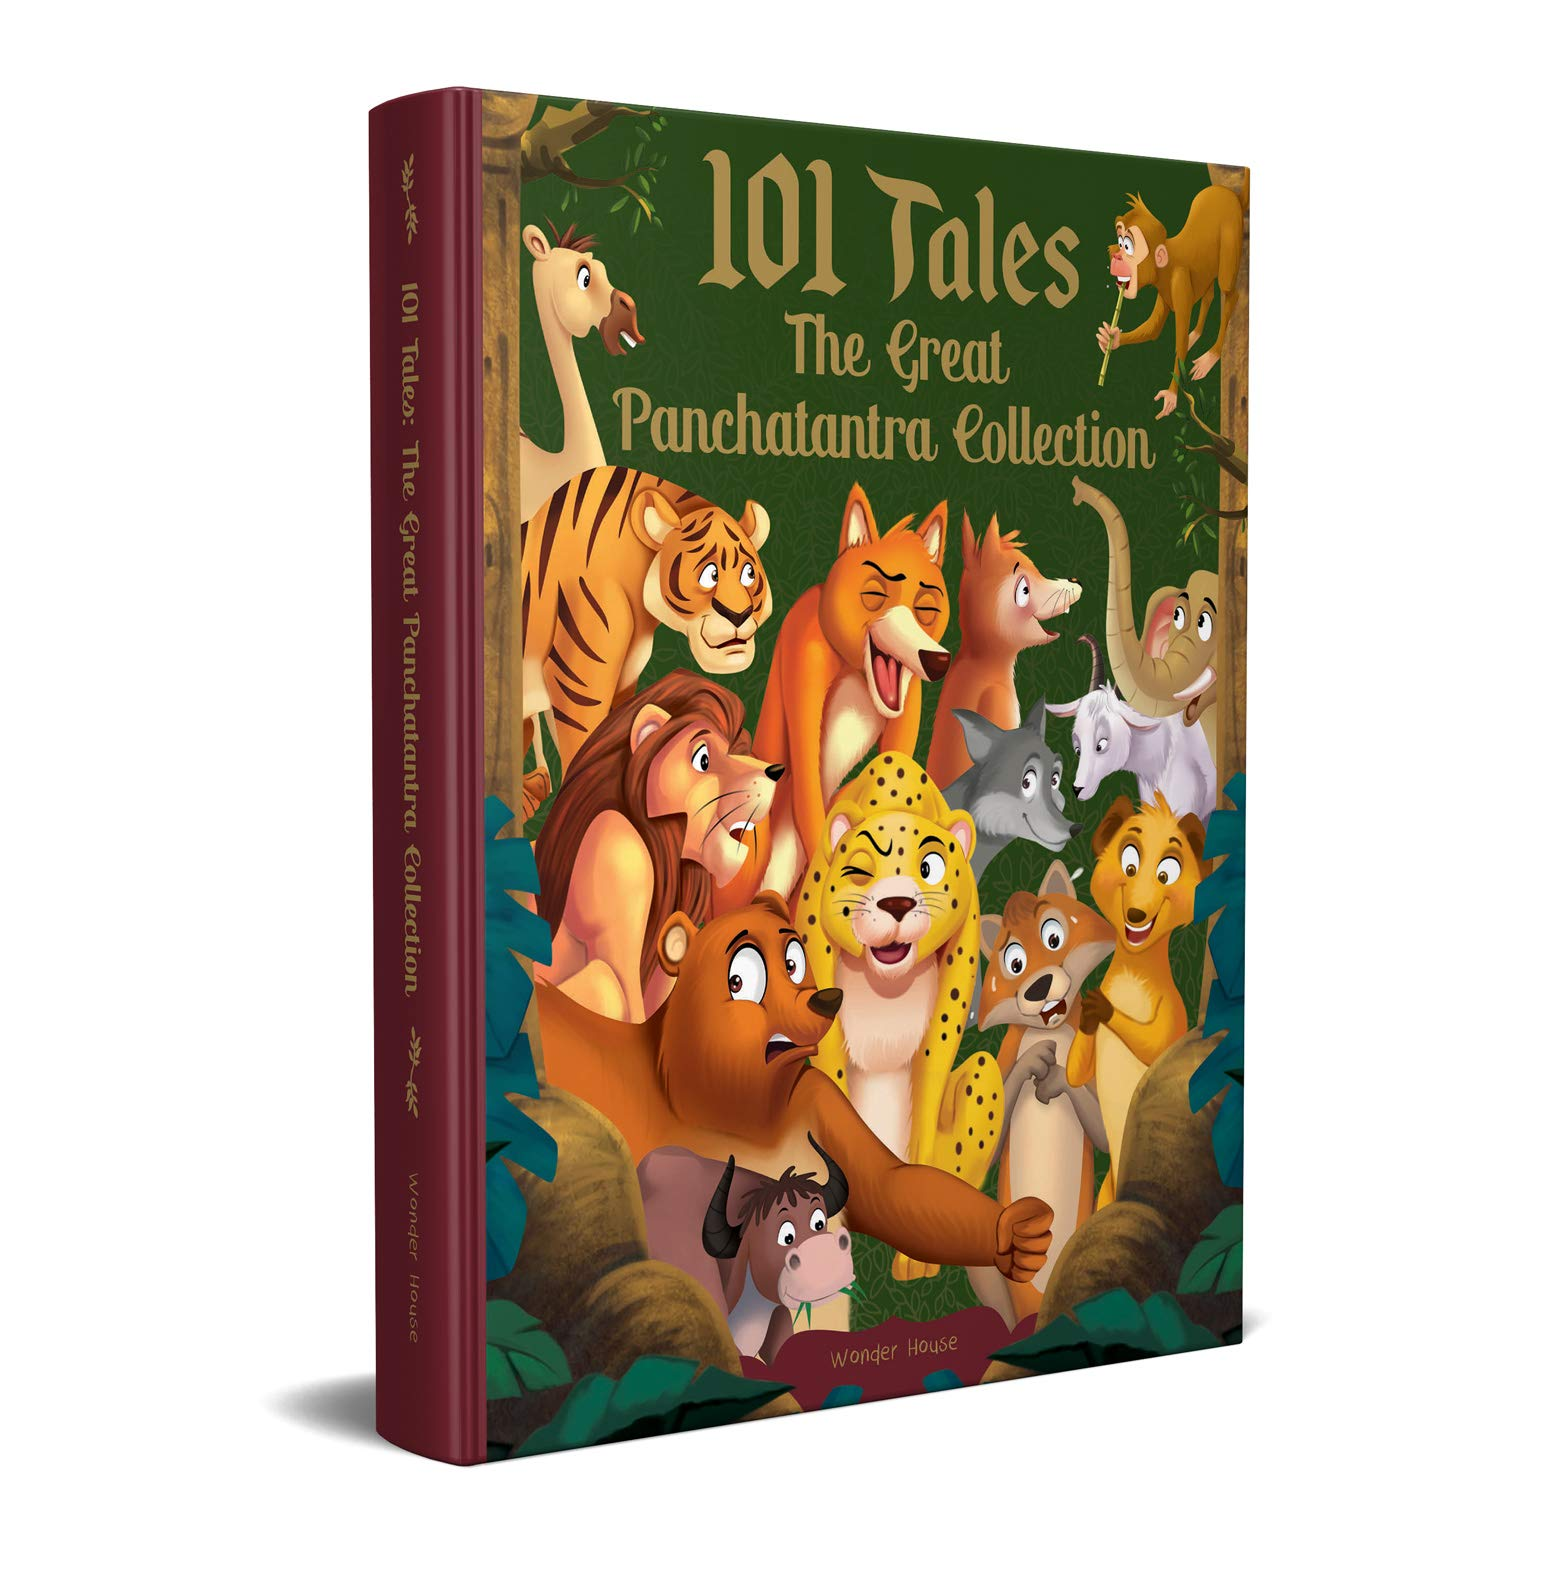 101 Tales The Great Panchatantra Collection – Collection Of Witty Moral Stories For Kids For Personality Development (Hardback)